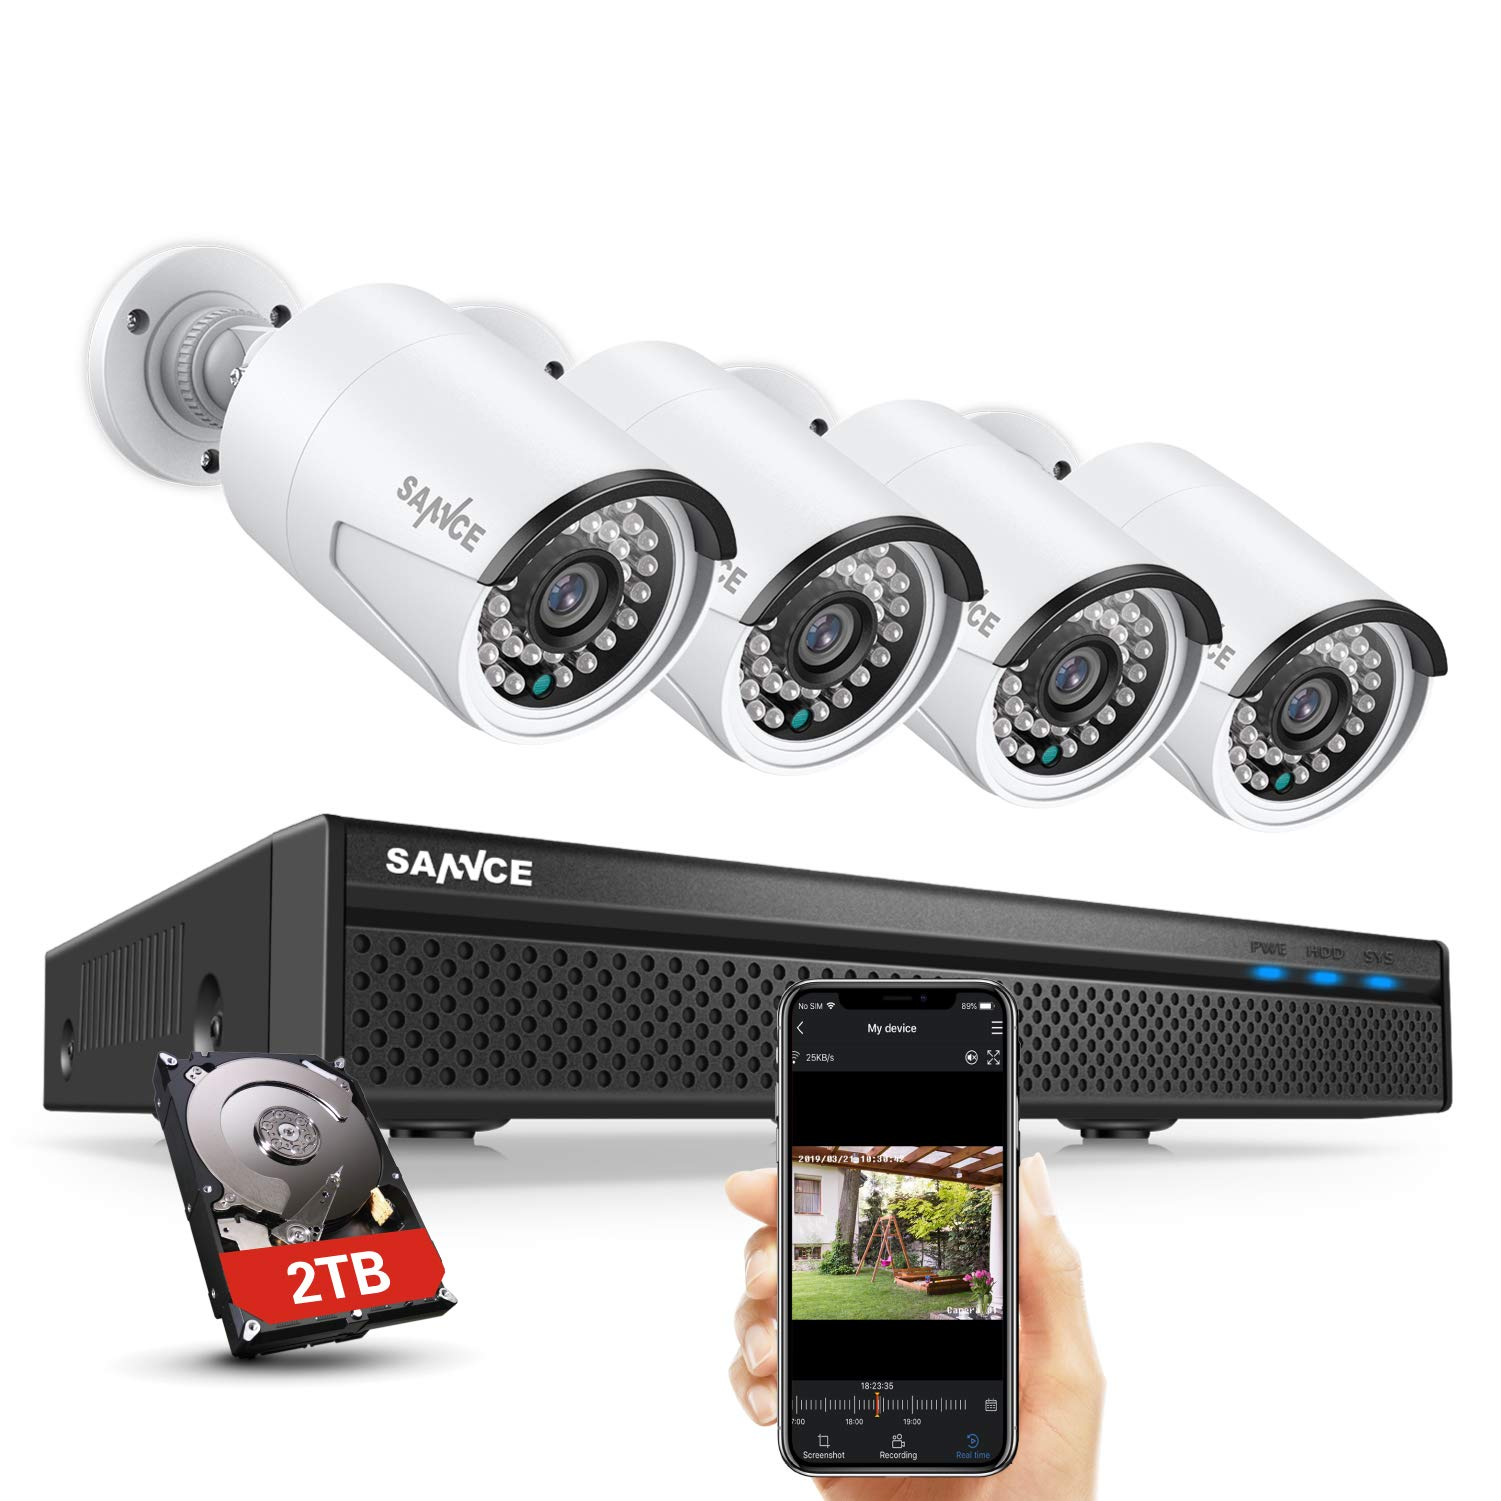 SANNCE 8CH 5MP PoE Home Security Camera System, 4pcs Wired 5MP Outdoor PoE Cameras, 5MP 8-Channel NVR Security System with 2TB HDD for 24/7 Recording, Smart Playback, Instant Email Alert with Images